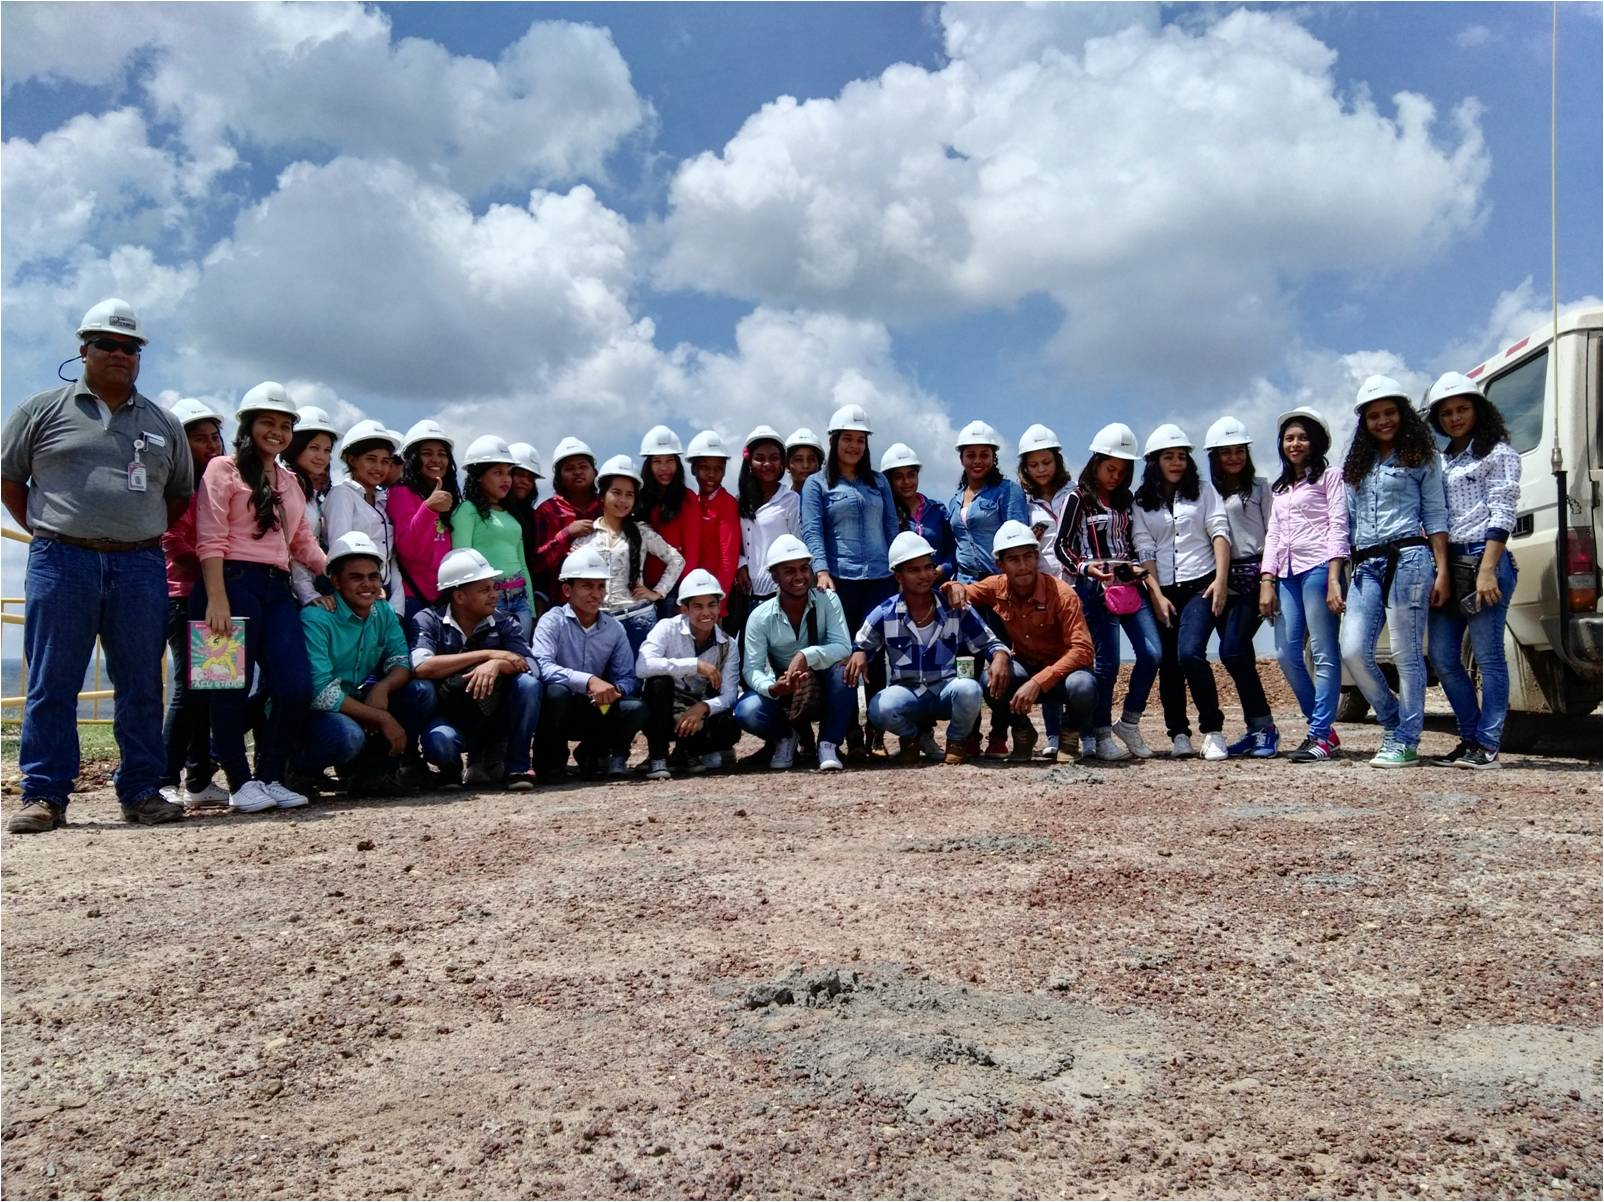 Students in their final year at the Benito Ramos Trespalacios Vocational-technical School